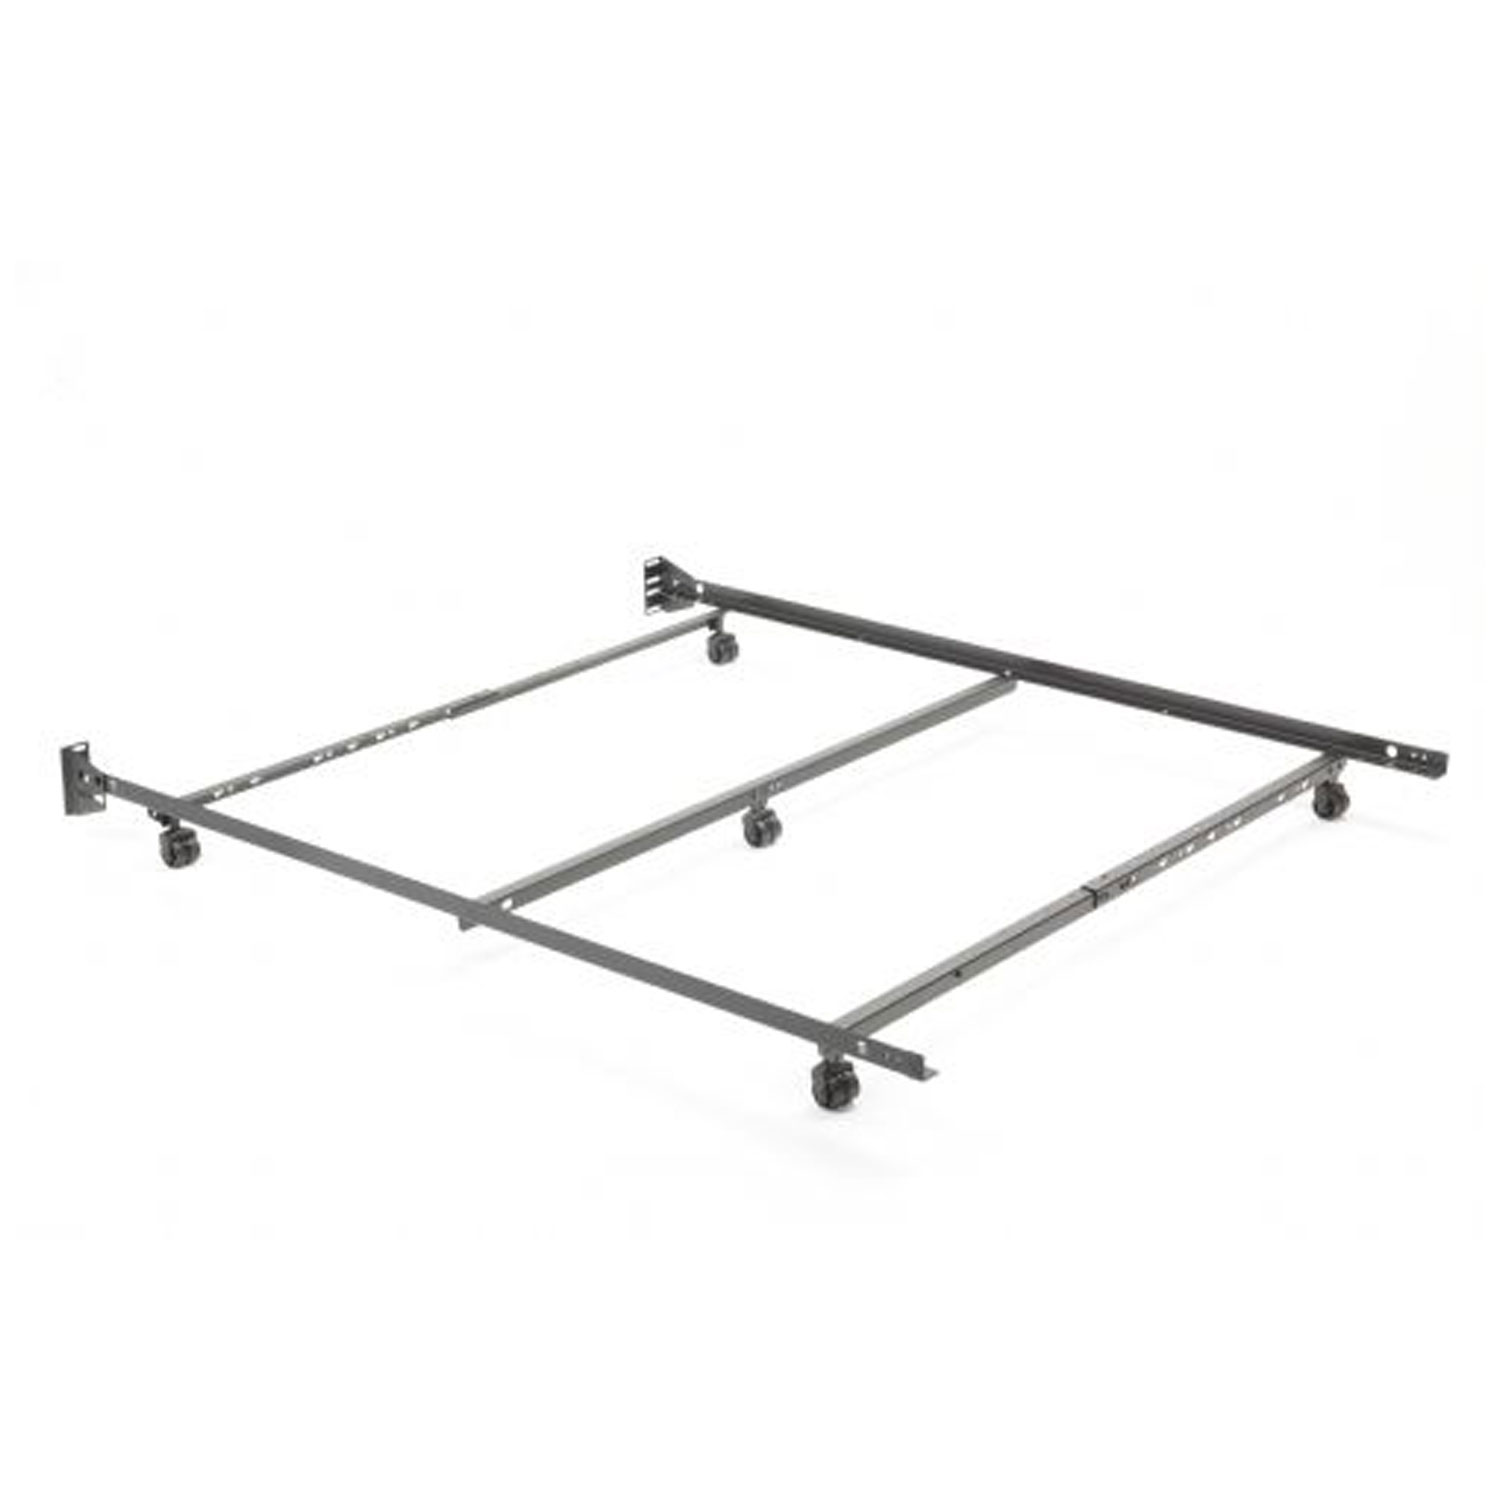 Twin Bed Frame Low Profile Q46rlp Twin Full Queen Low Profile Bed Frame Hope Home